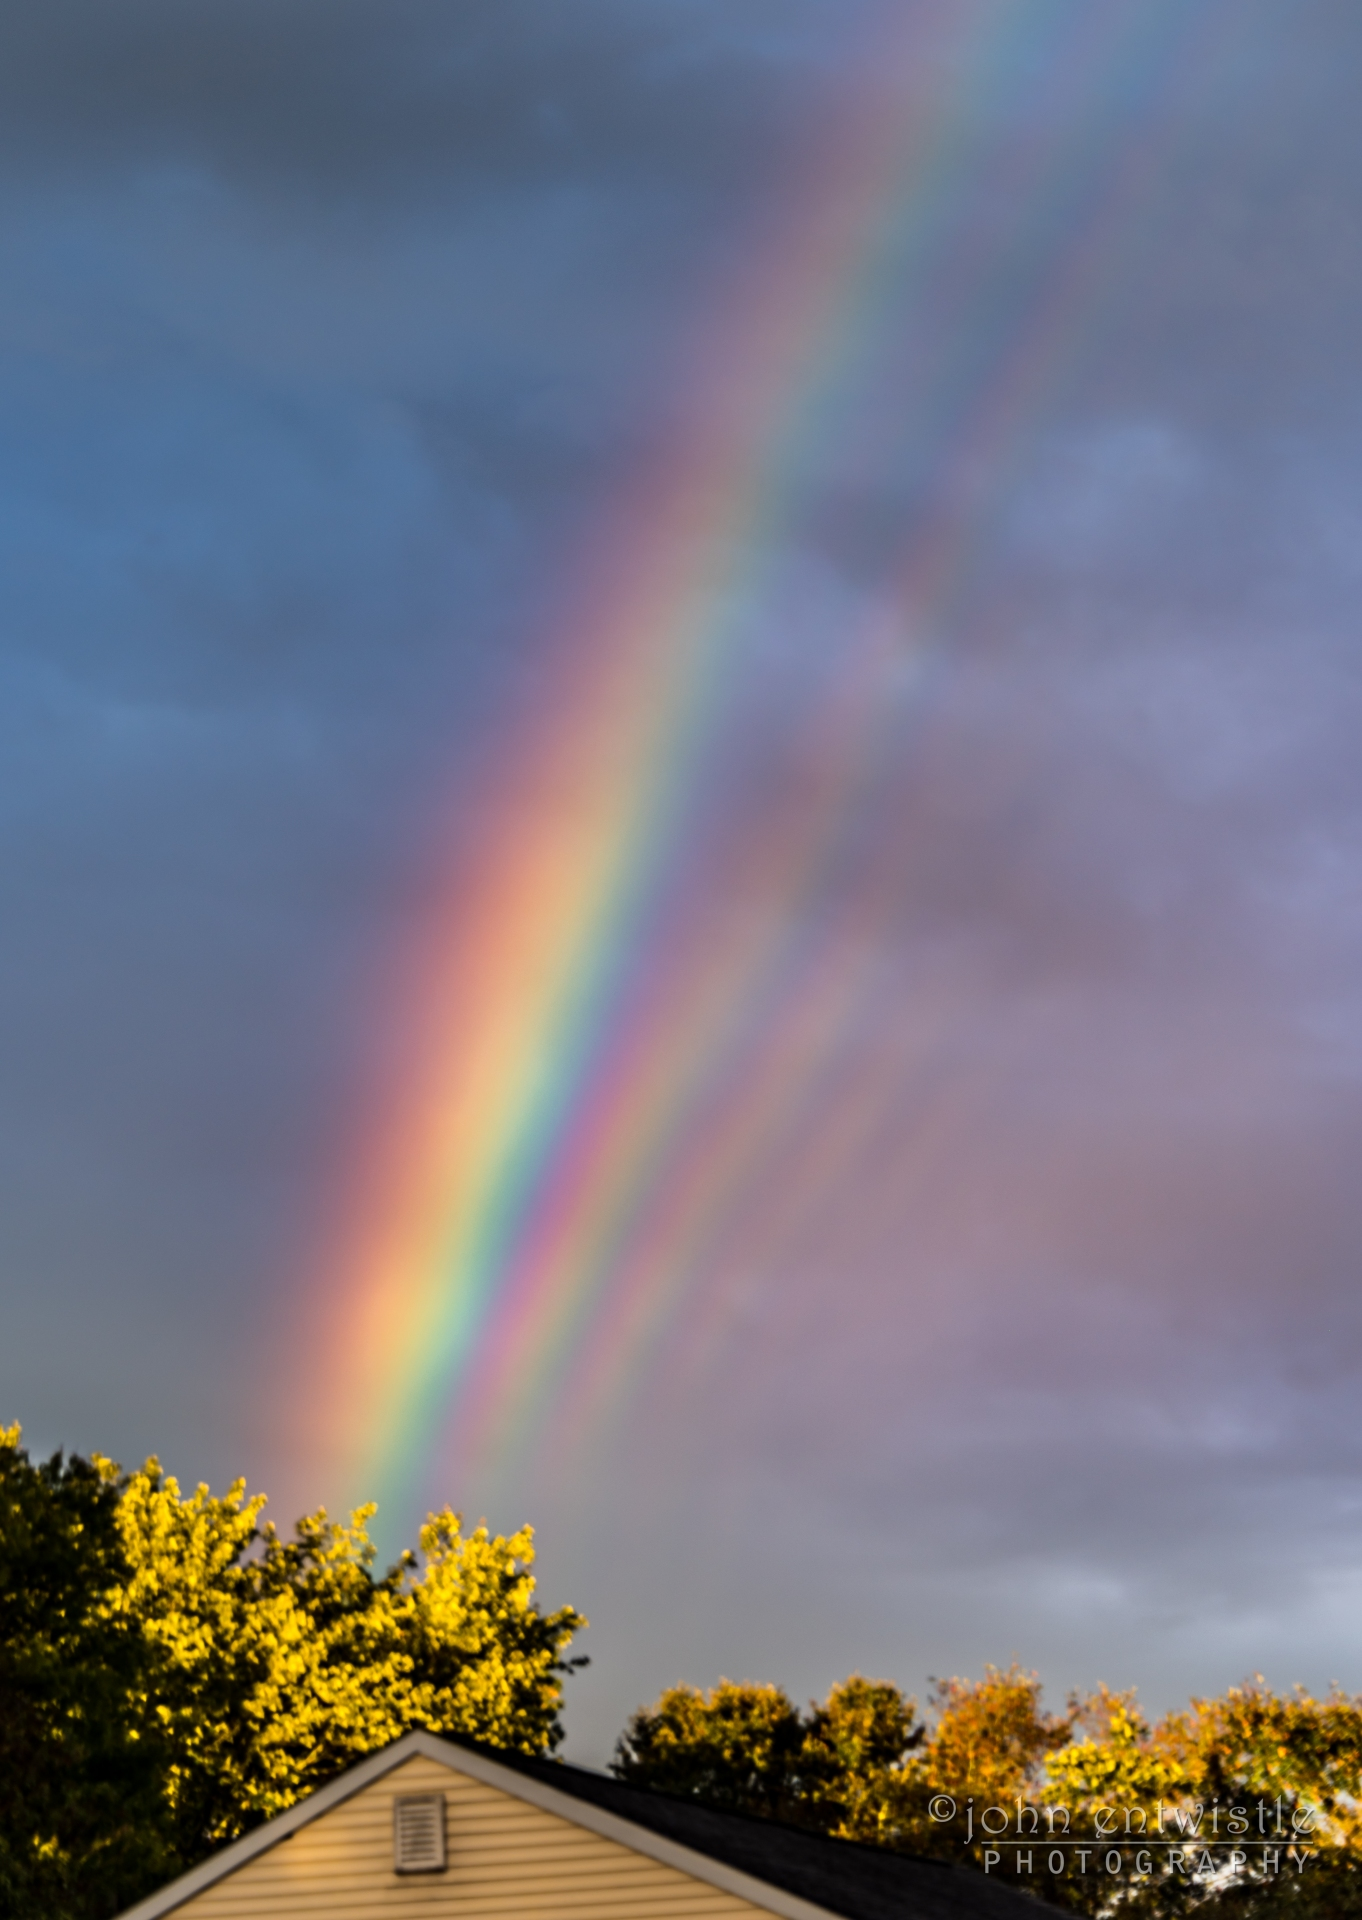 [METEOROLOGIA]   Supernumerary Rainbows over New Jersey